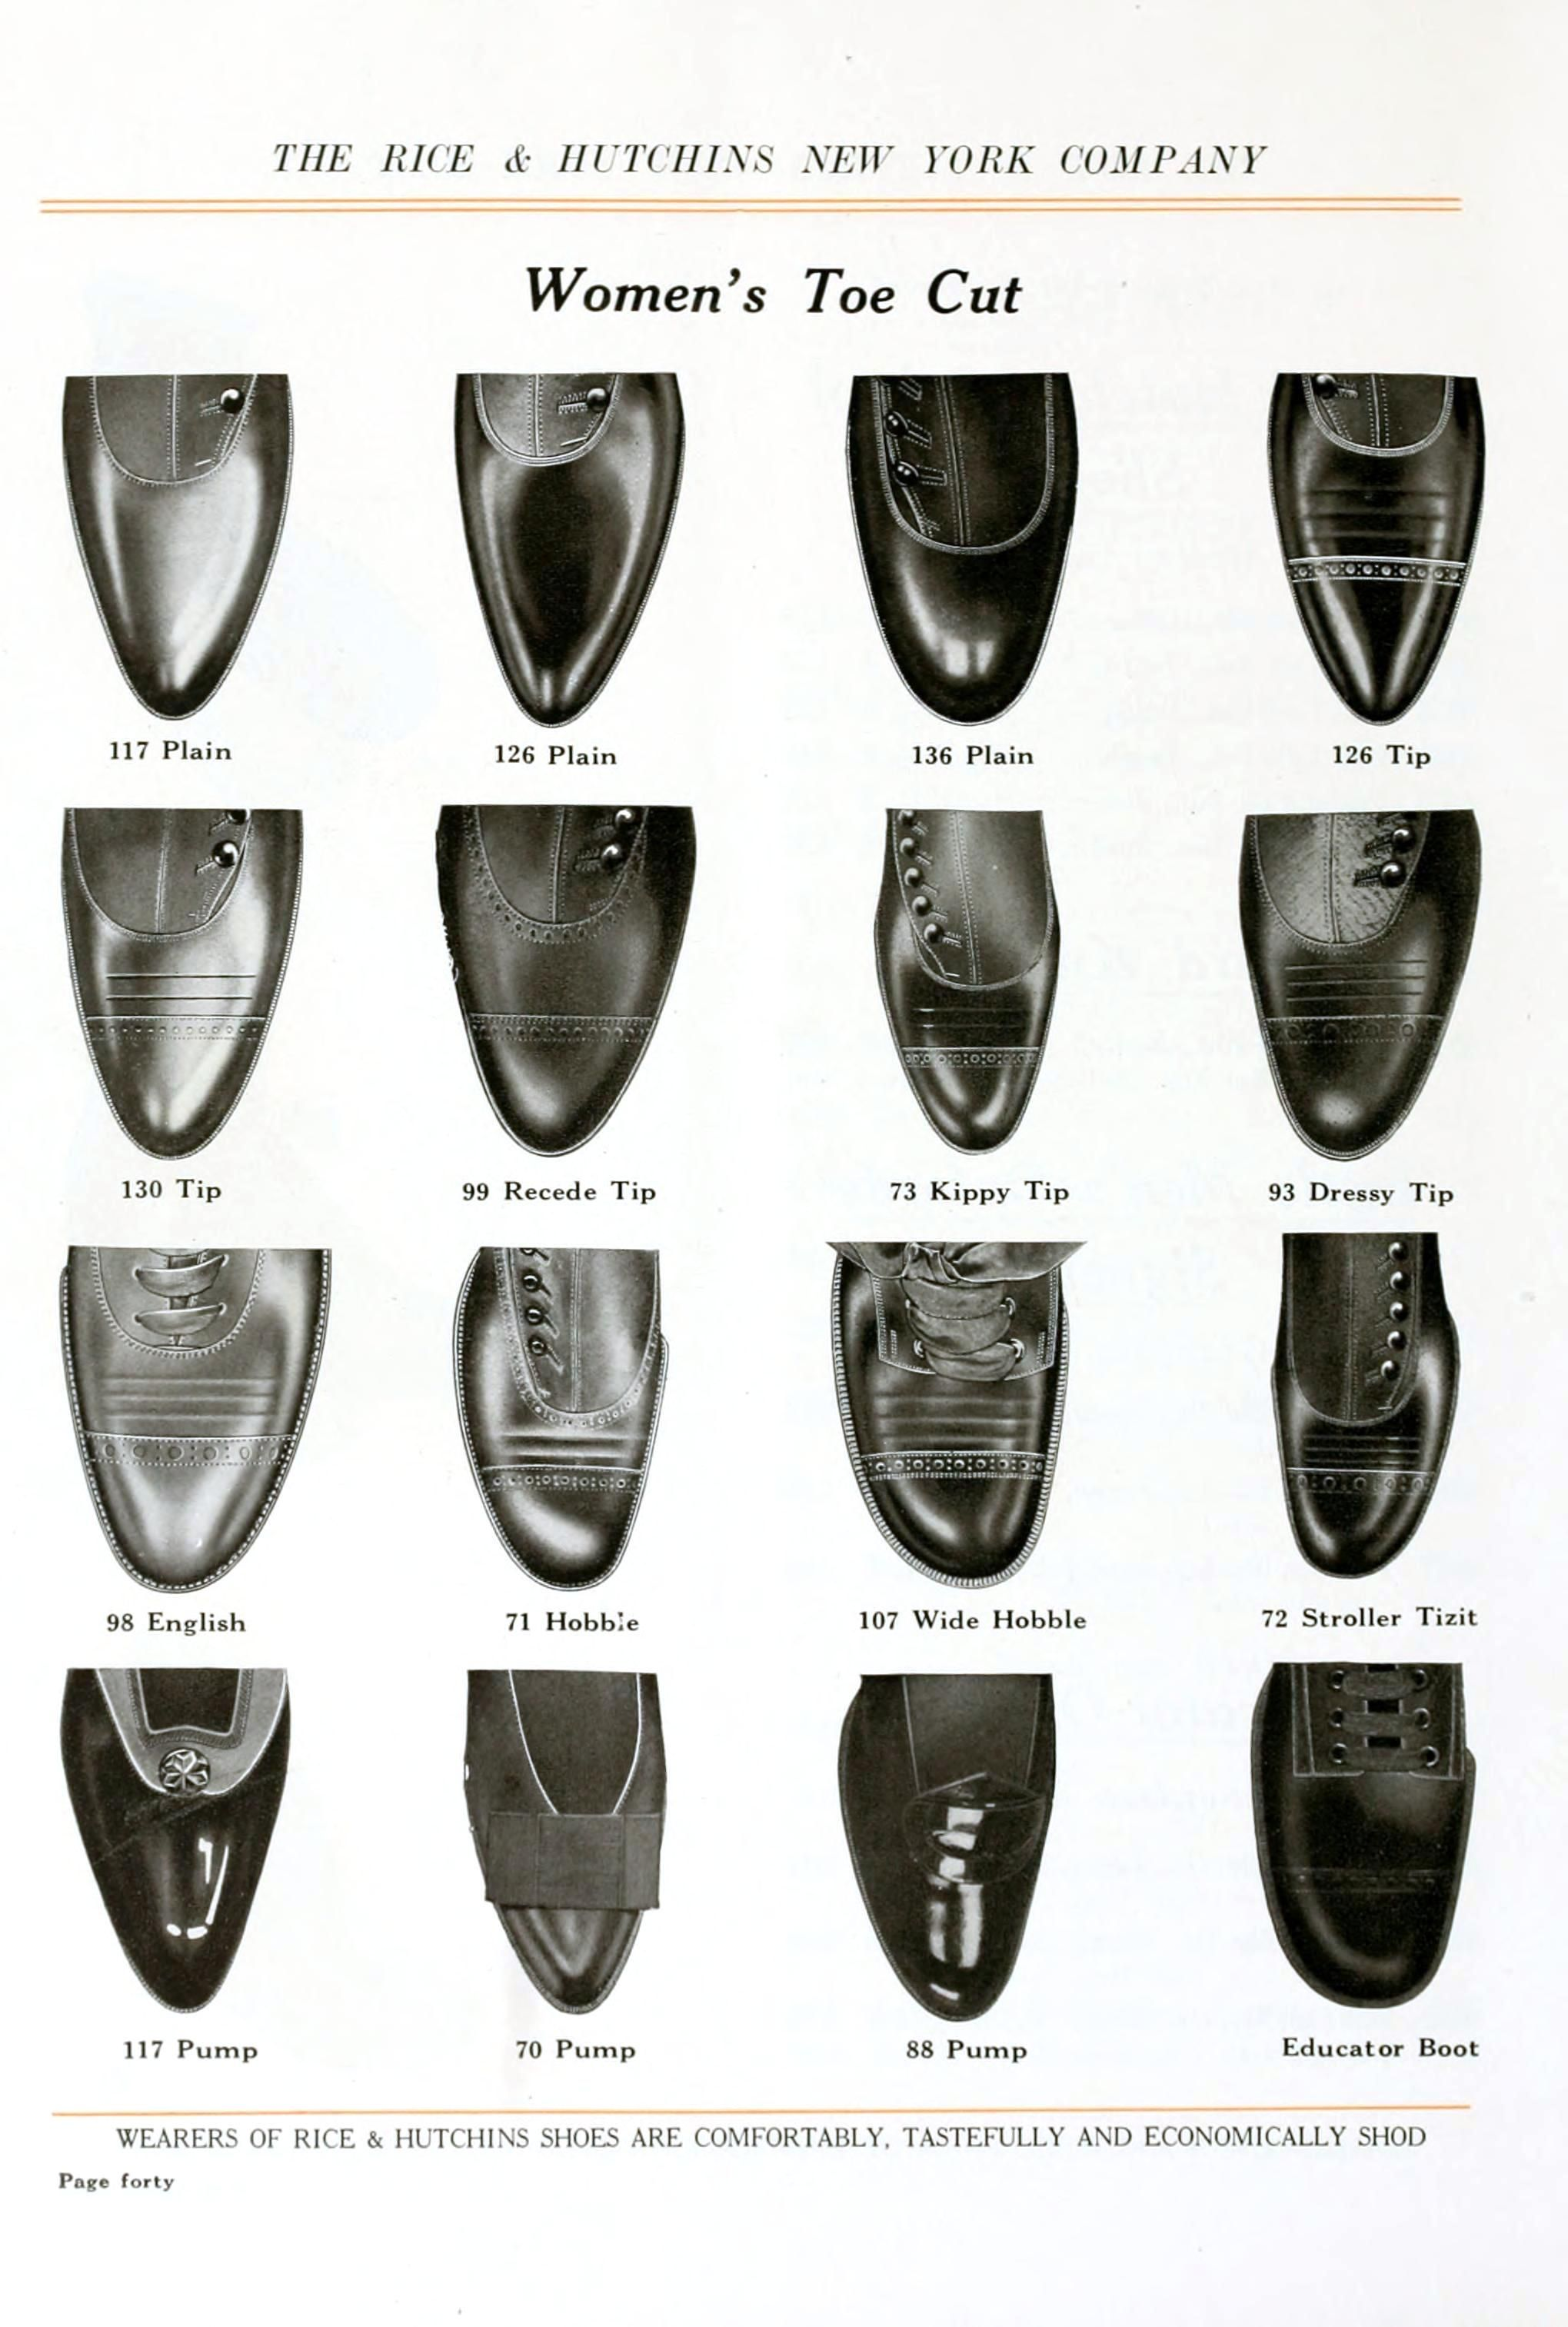 Are Mens And Womens Shoe Shapes Different